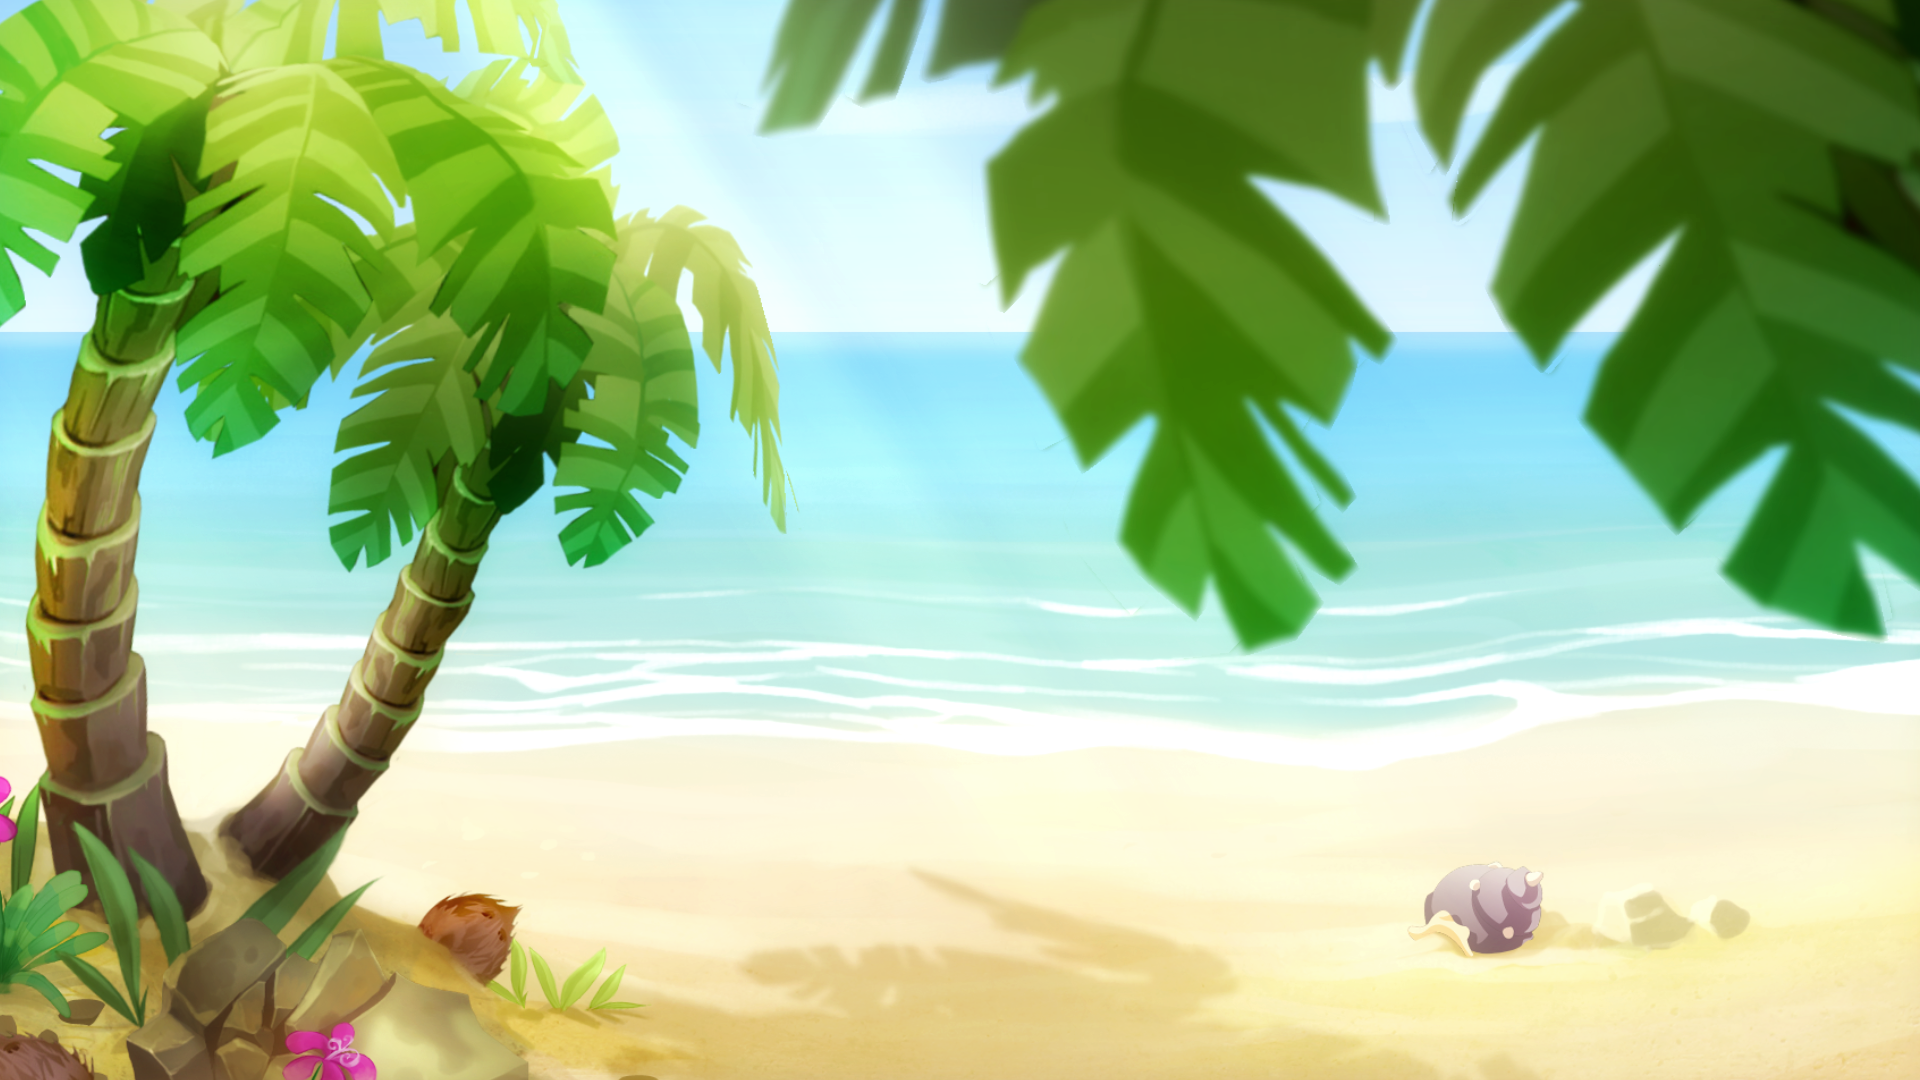 The beach.png